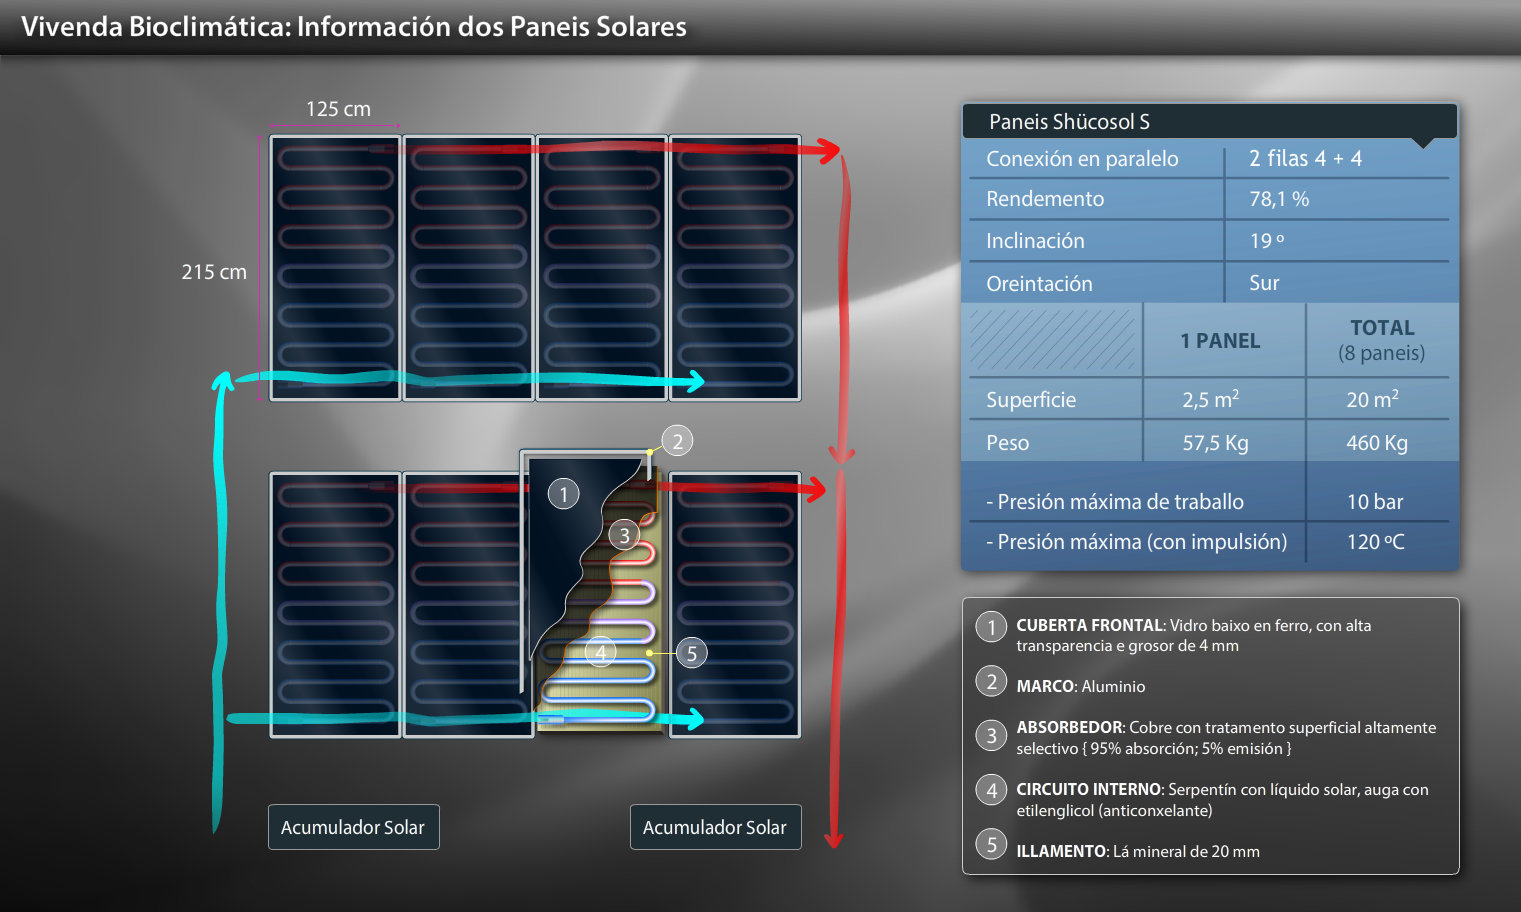 Thermal solar panels of bioclimatic housing